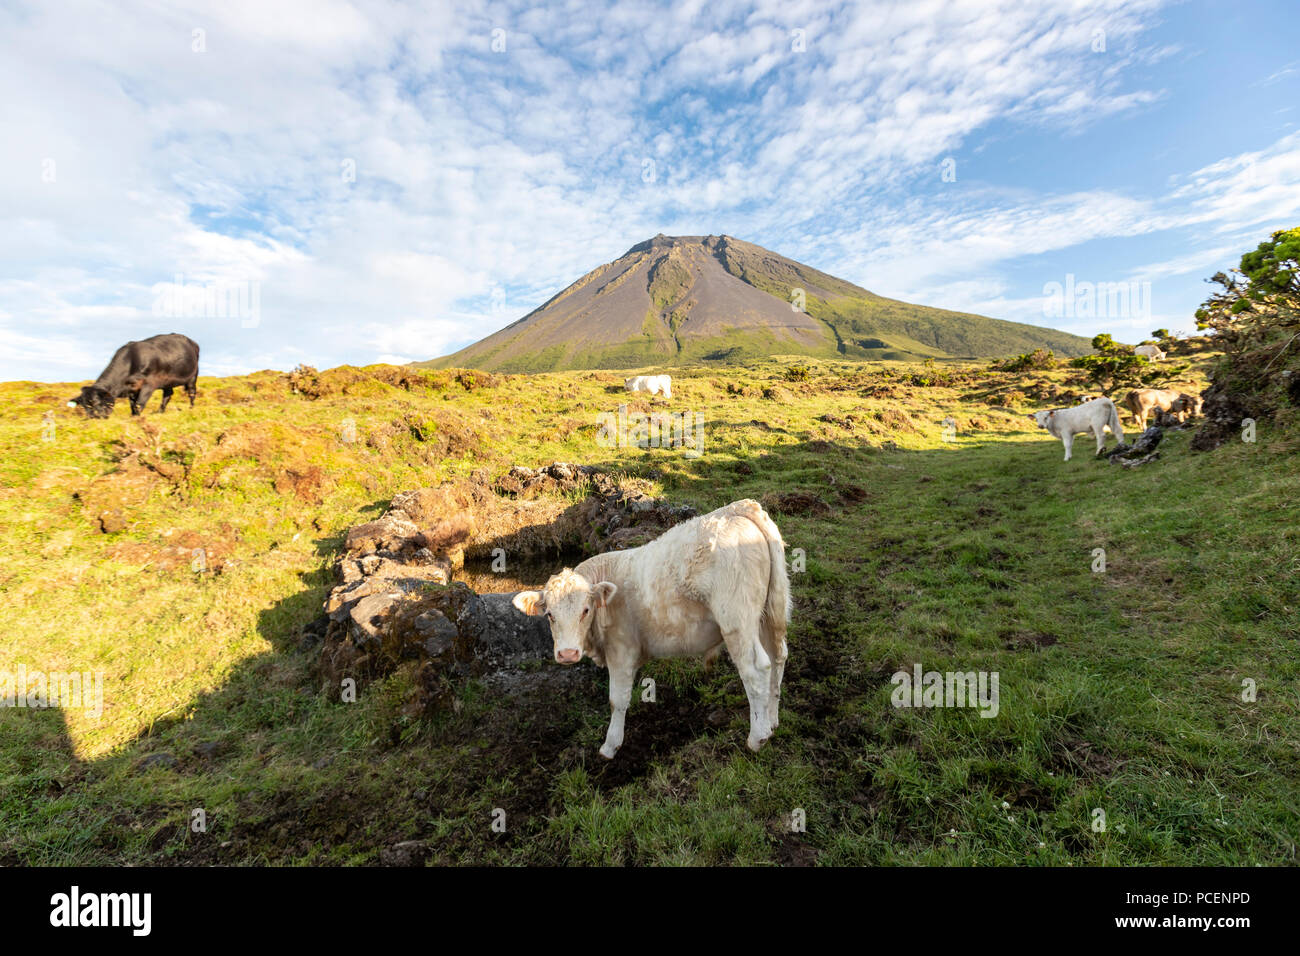 Cows and the silhouette of the Mount Pico along EN3 longitudinal road northeast of Mount Pico, Pico island, Azores, Portugal - Stock Image